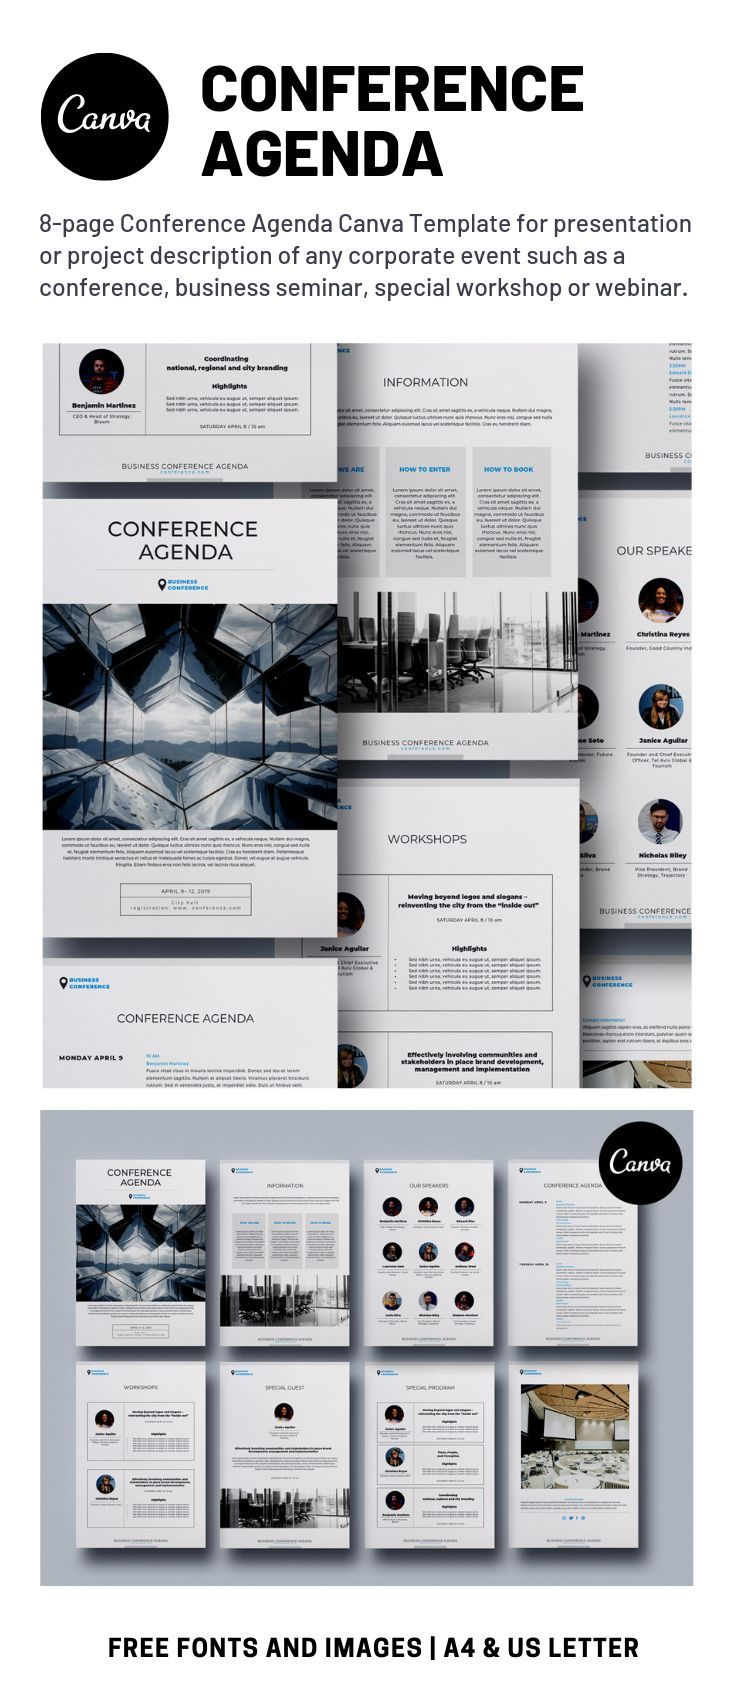 Conference Agenda Canva Template Running a conference or workshop 8 page Conference Agenda Canva Template will help you to design a great presentationguide for any corpor...